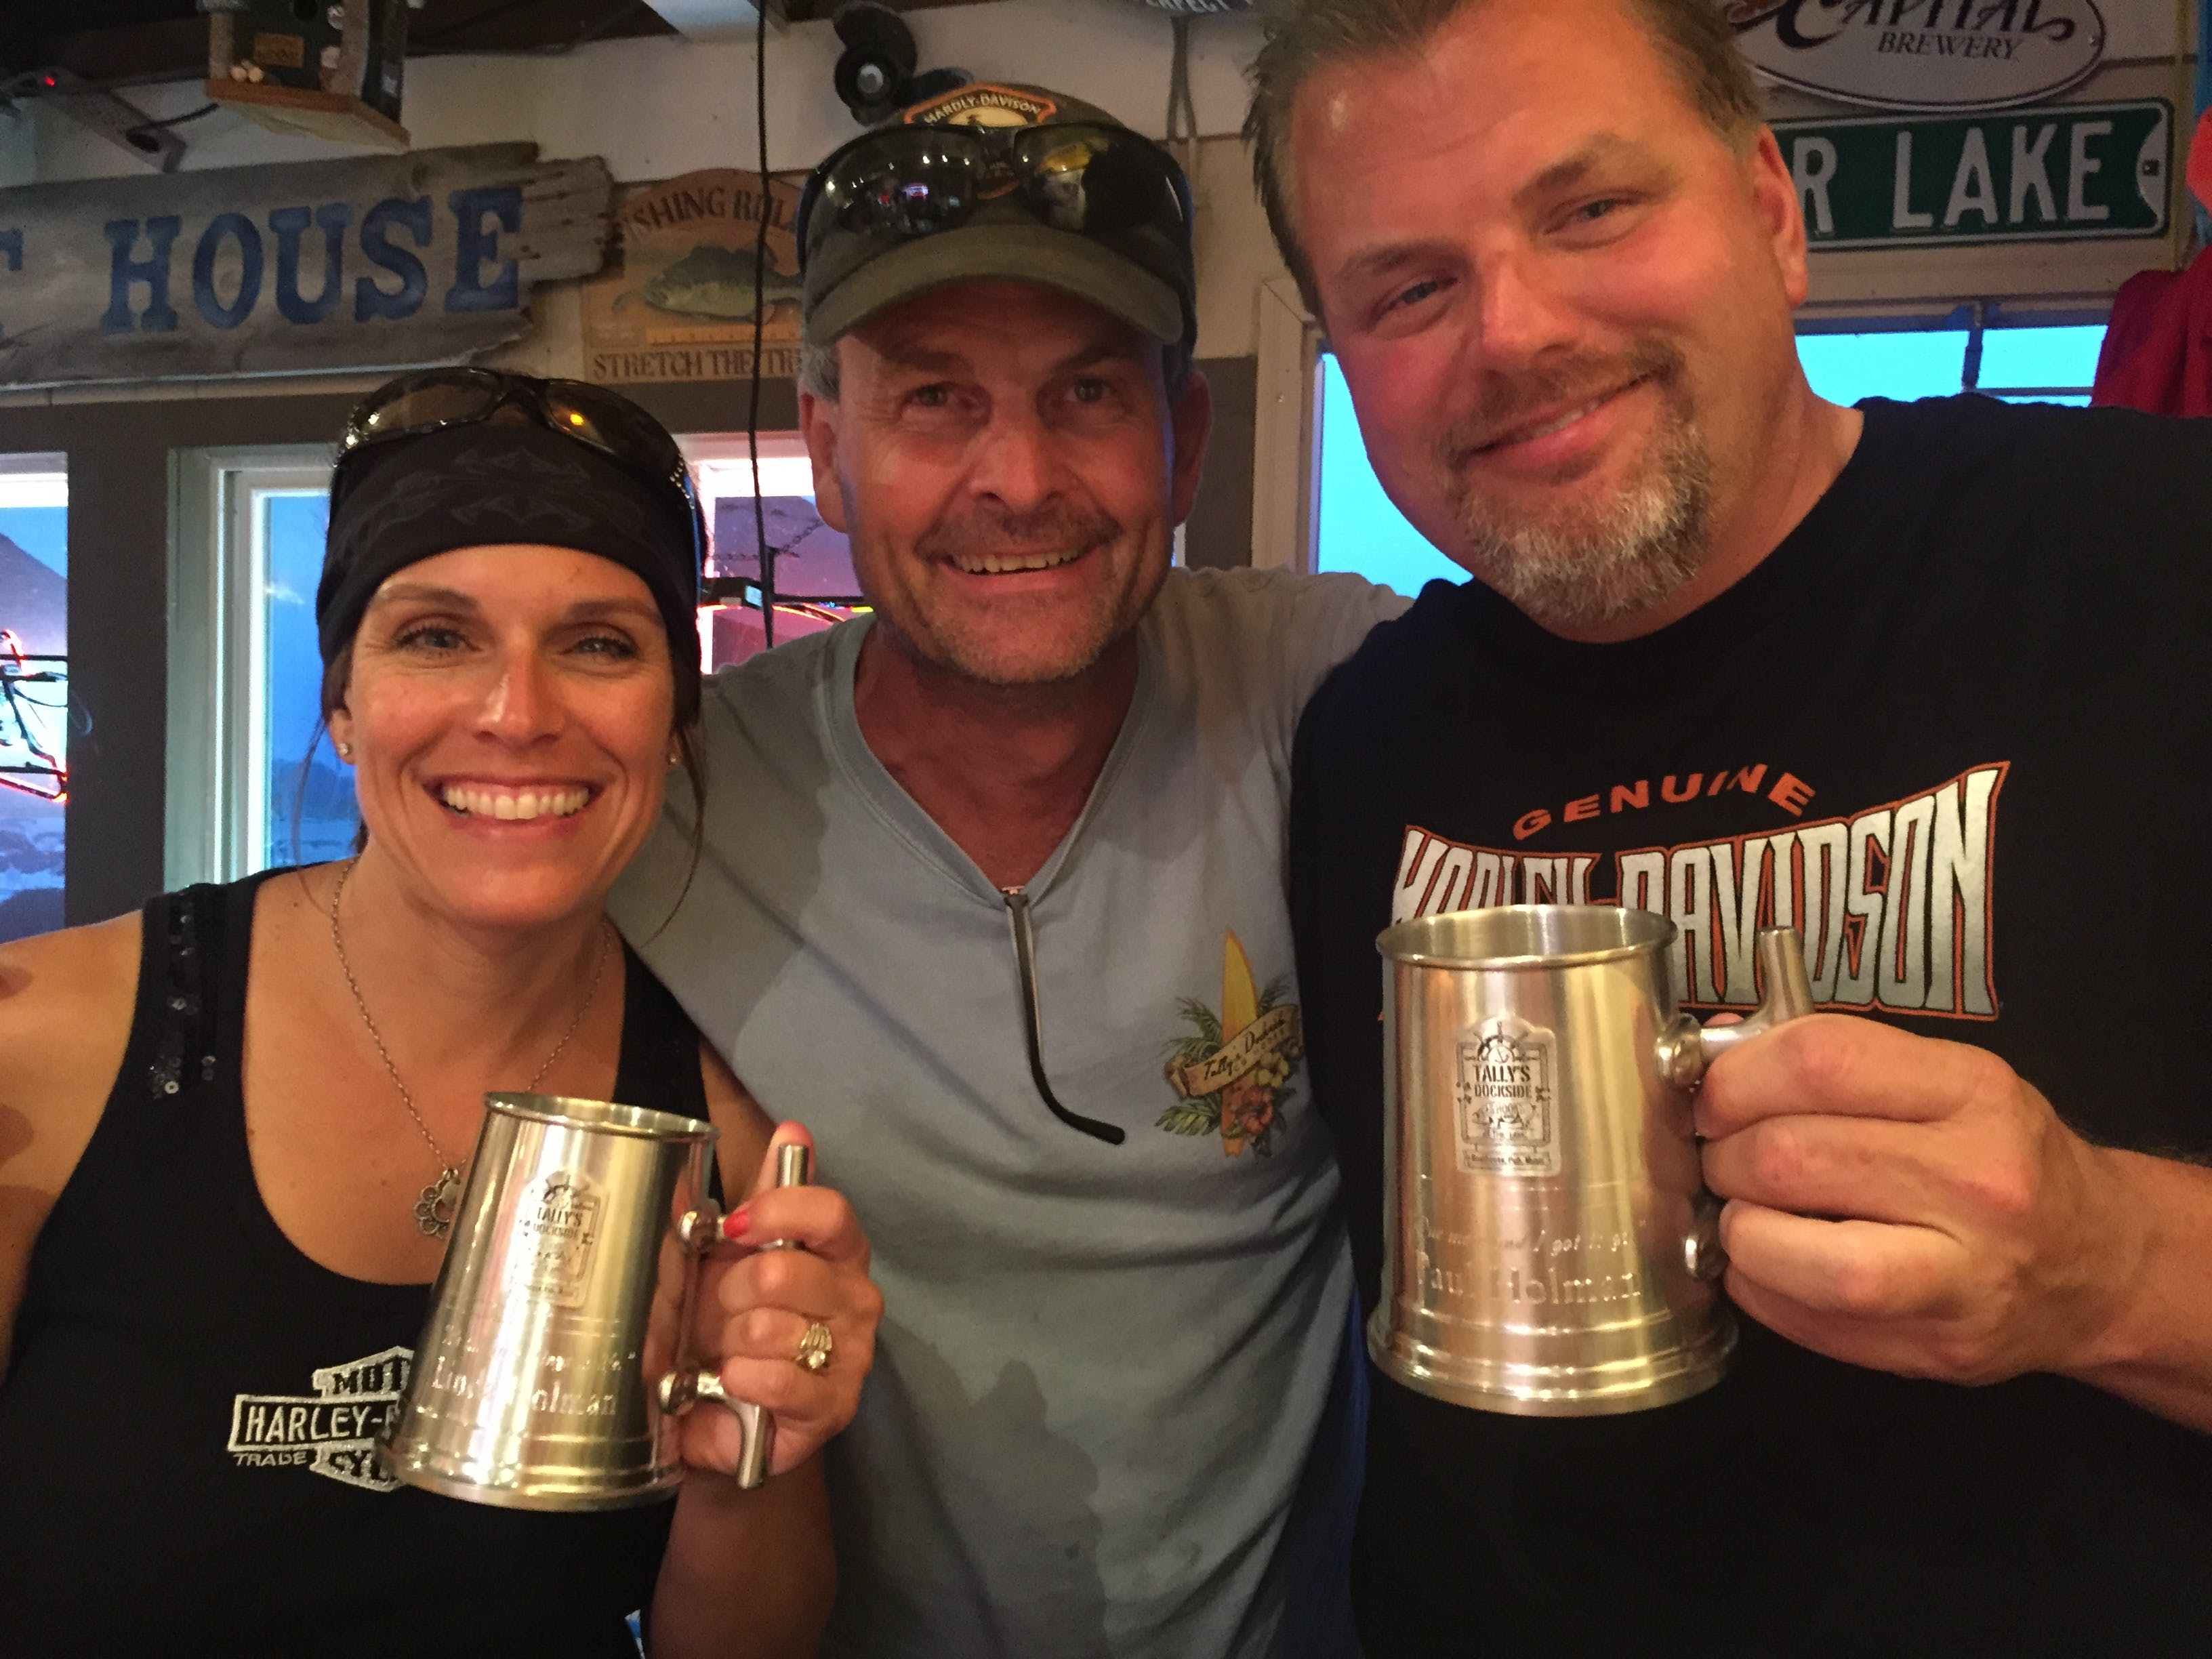 Three people holding up beer mugs and smiling at camera